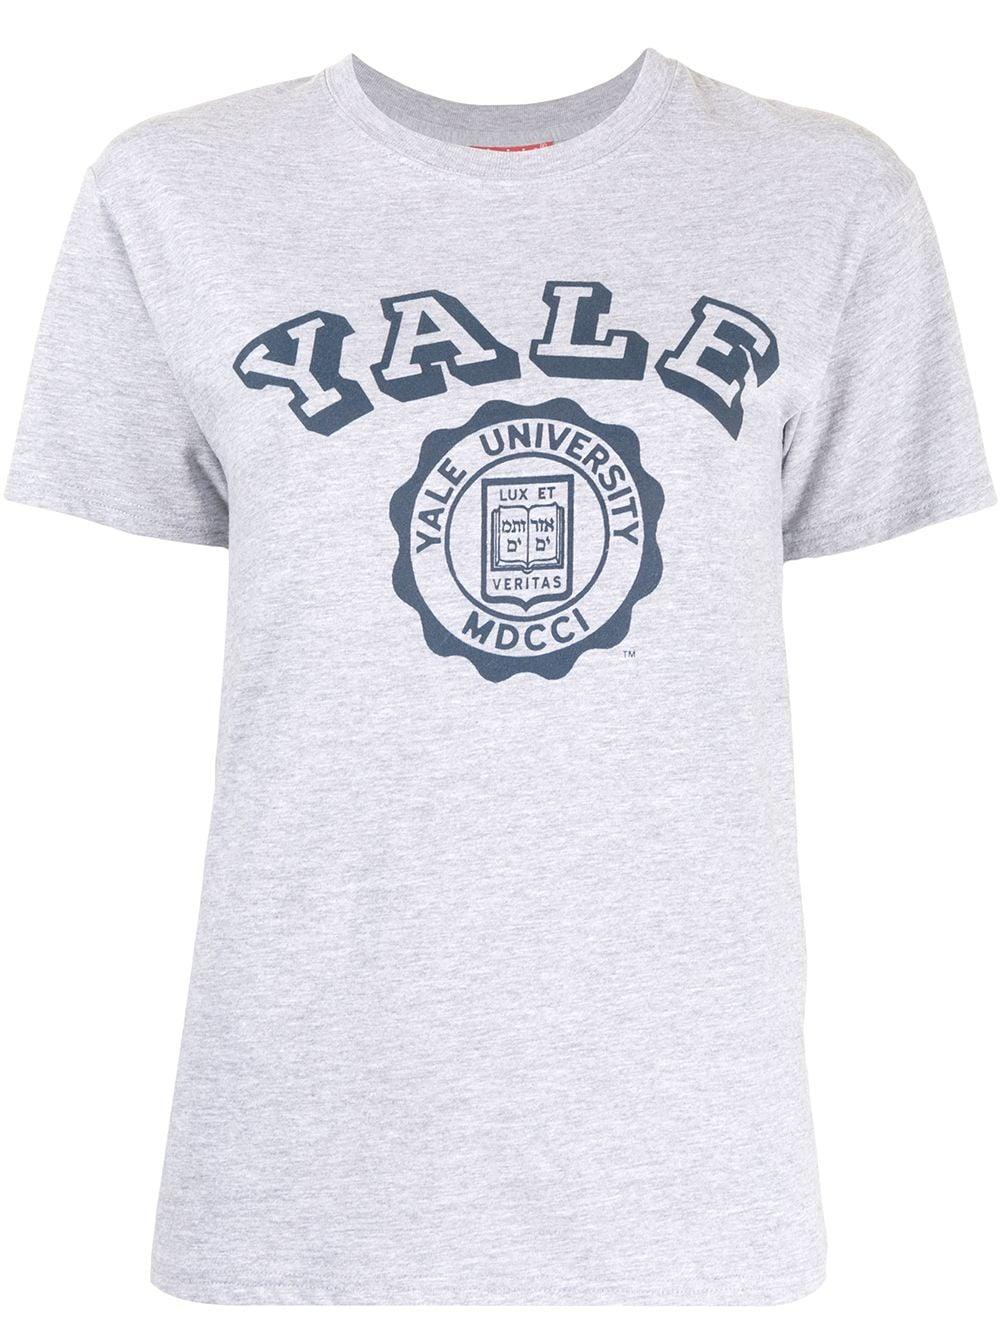 Yale Graphic Tee Item # DSW4250-147